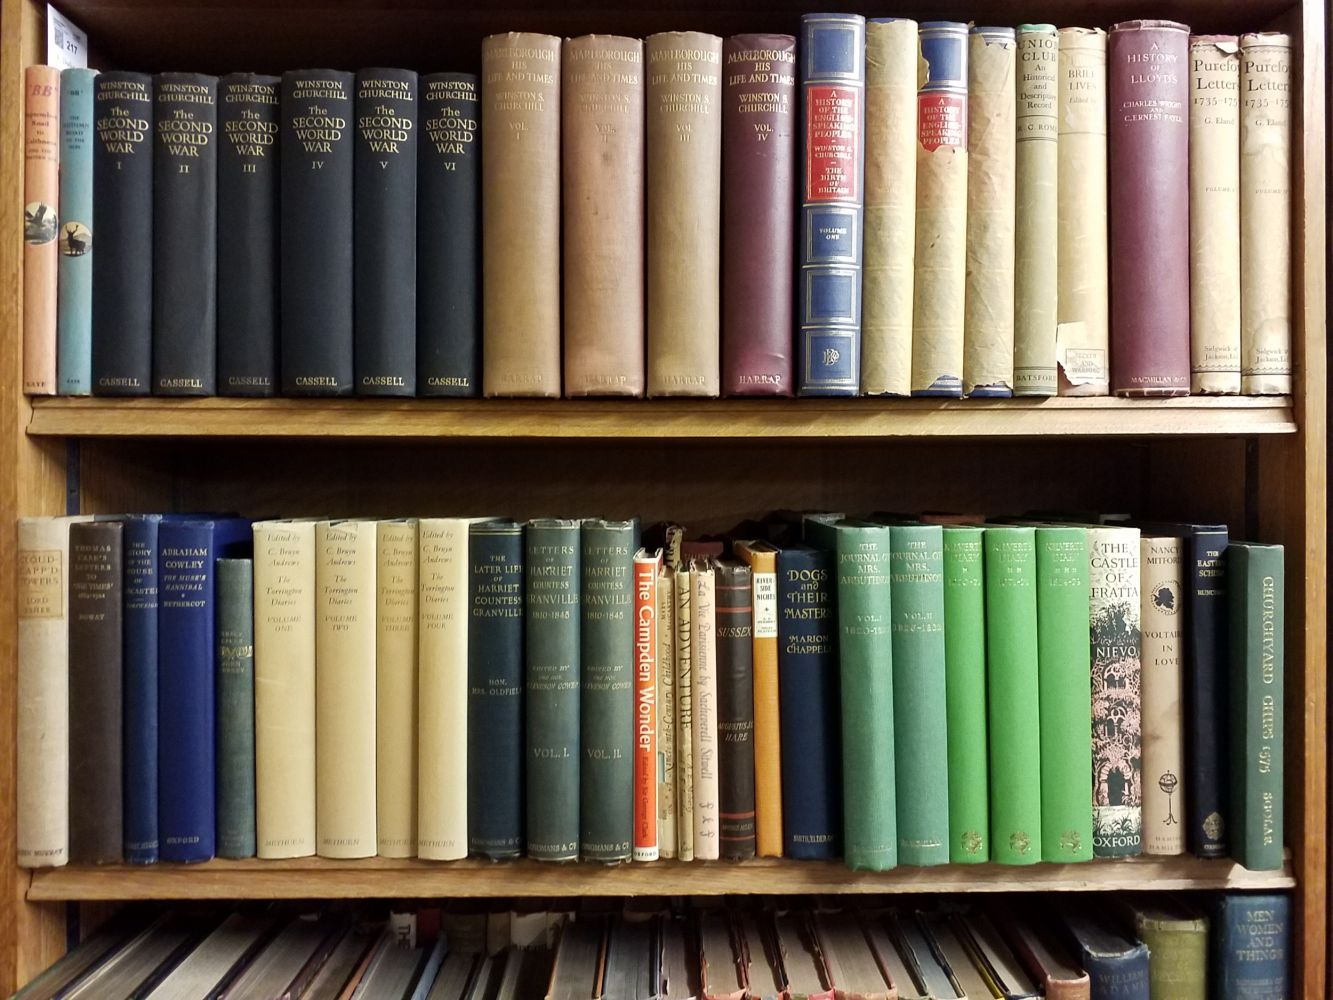 History. A large collection of early 20th-century & modern history reference & biography